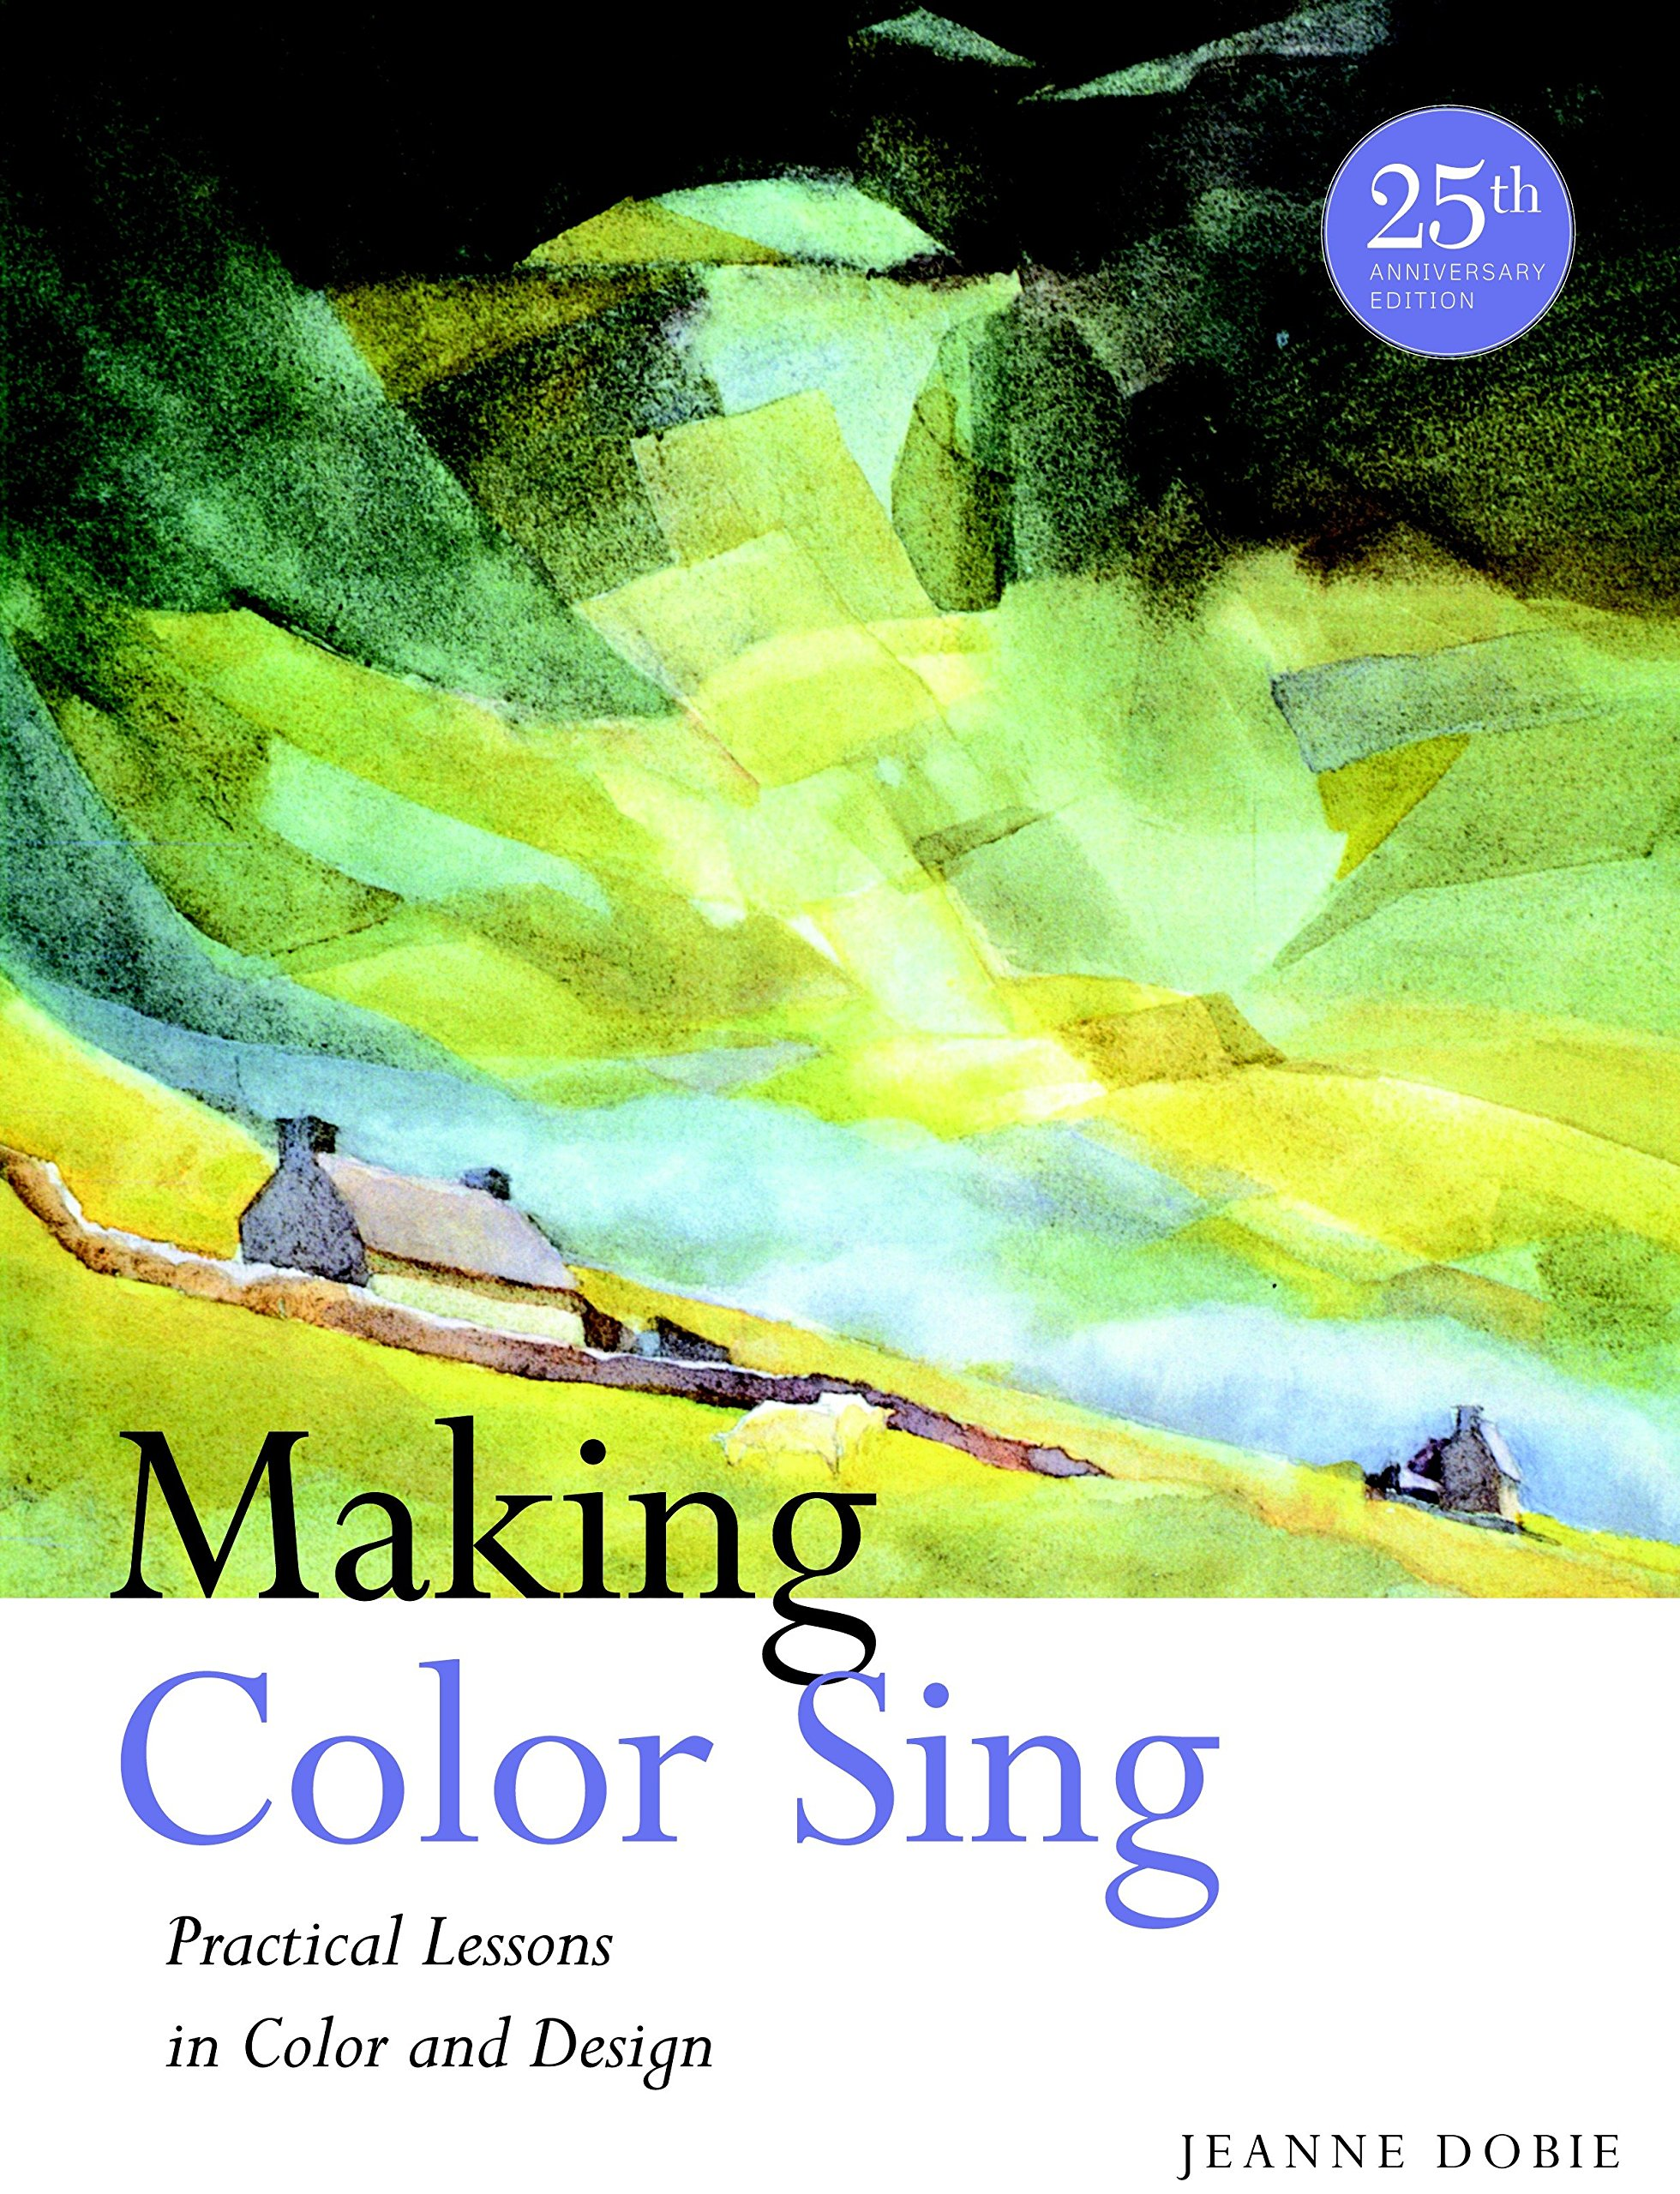 Making Color Sing, 25th Anniversary Edition: Practical Lessons in Color and Design